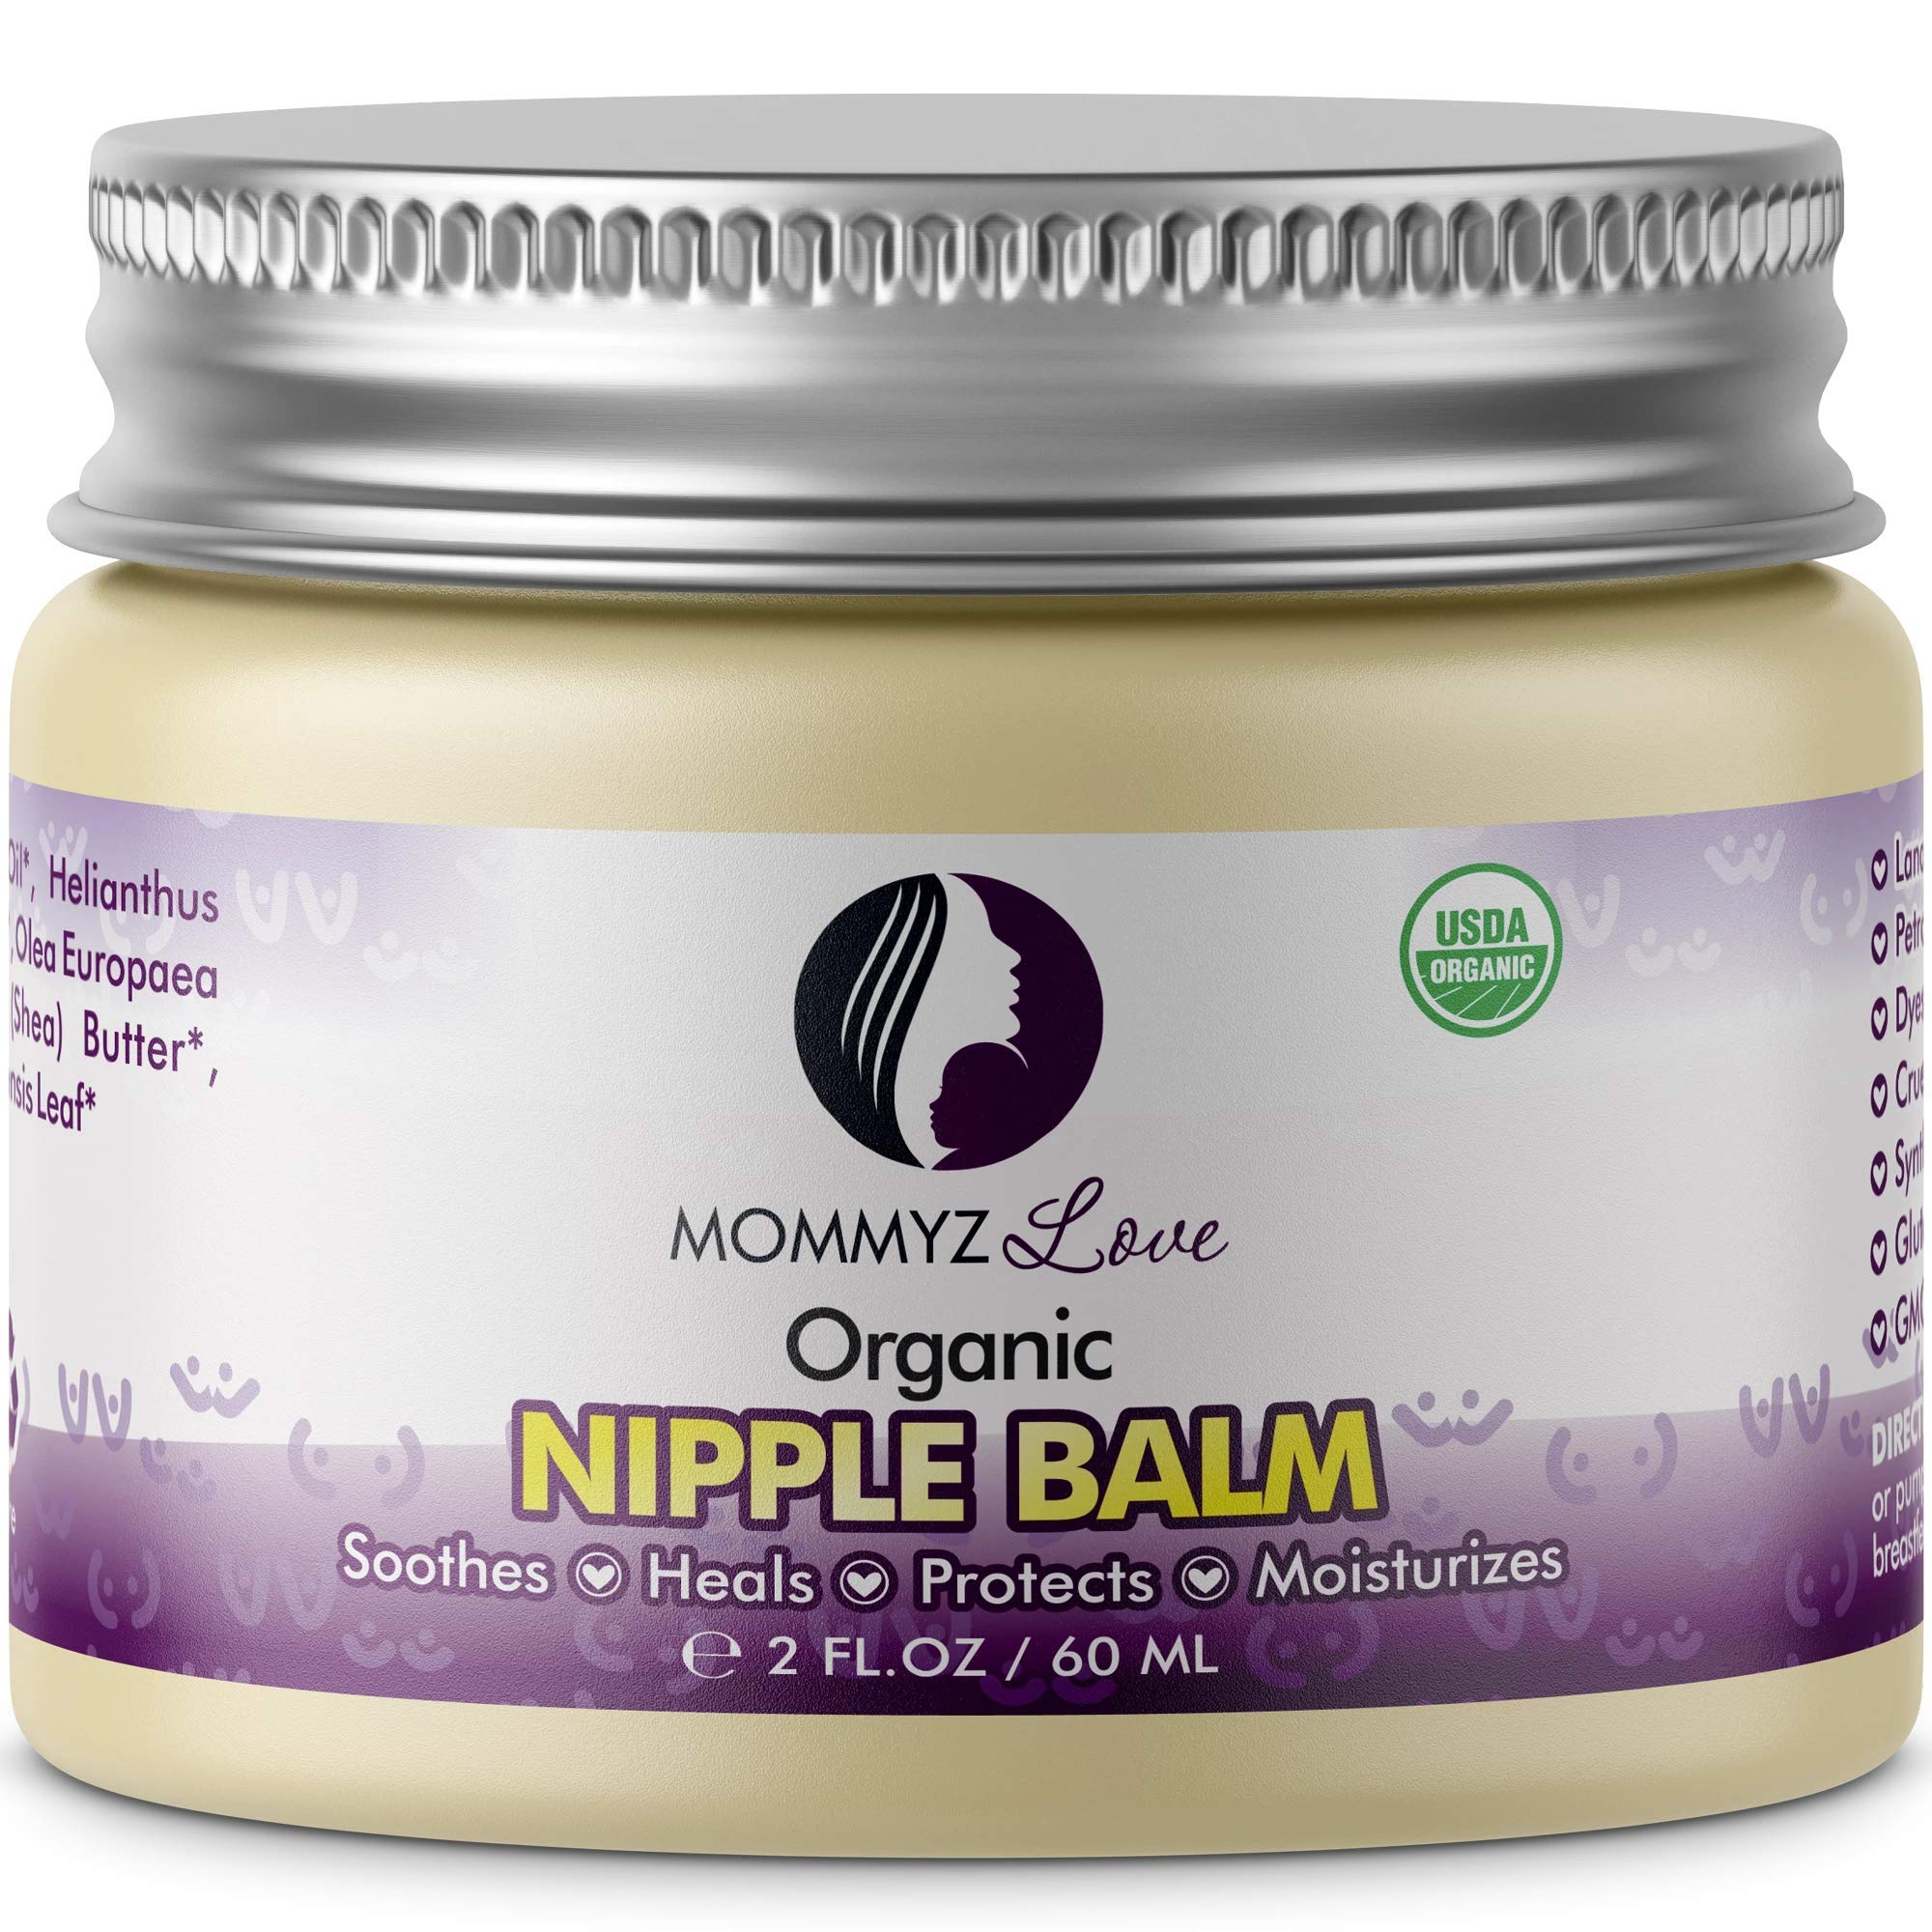 Best Nipple Cream for Breastfeeding Relief (2 oz) - Provides Immediate Relief To Sore, Dry And Cracked Nipples Even After A Single Use - PEDIATRICIAN TESTED - USDA Certified Organic (1 Jar) by Mommyz Love